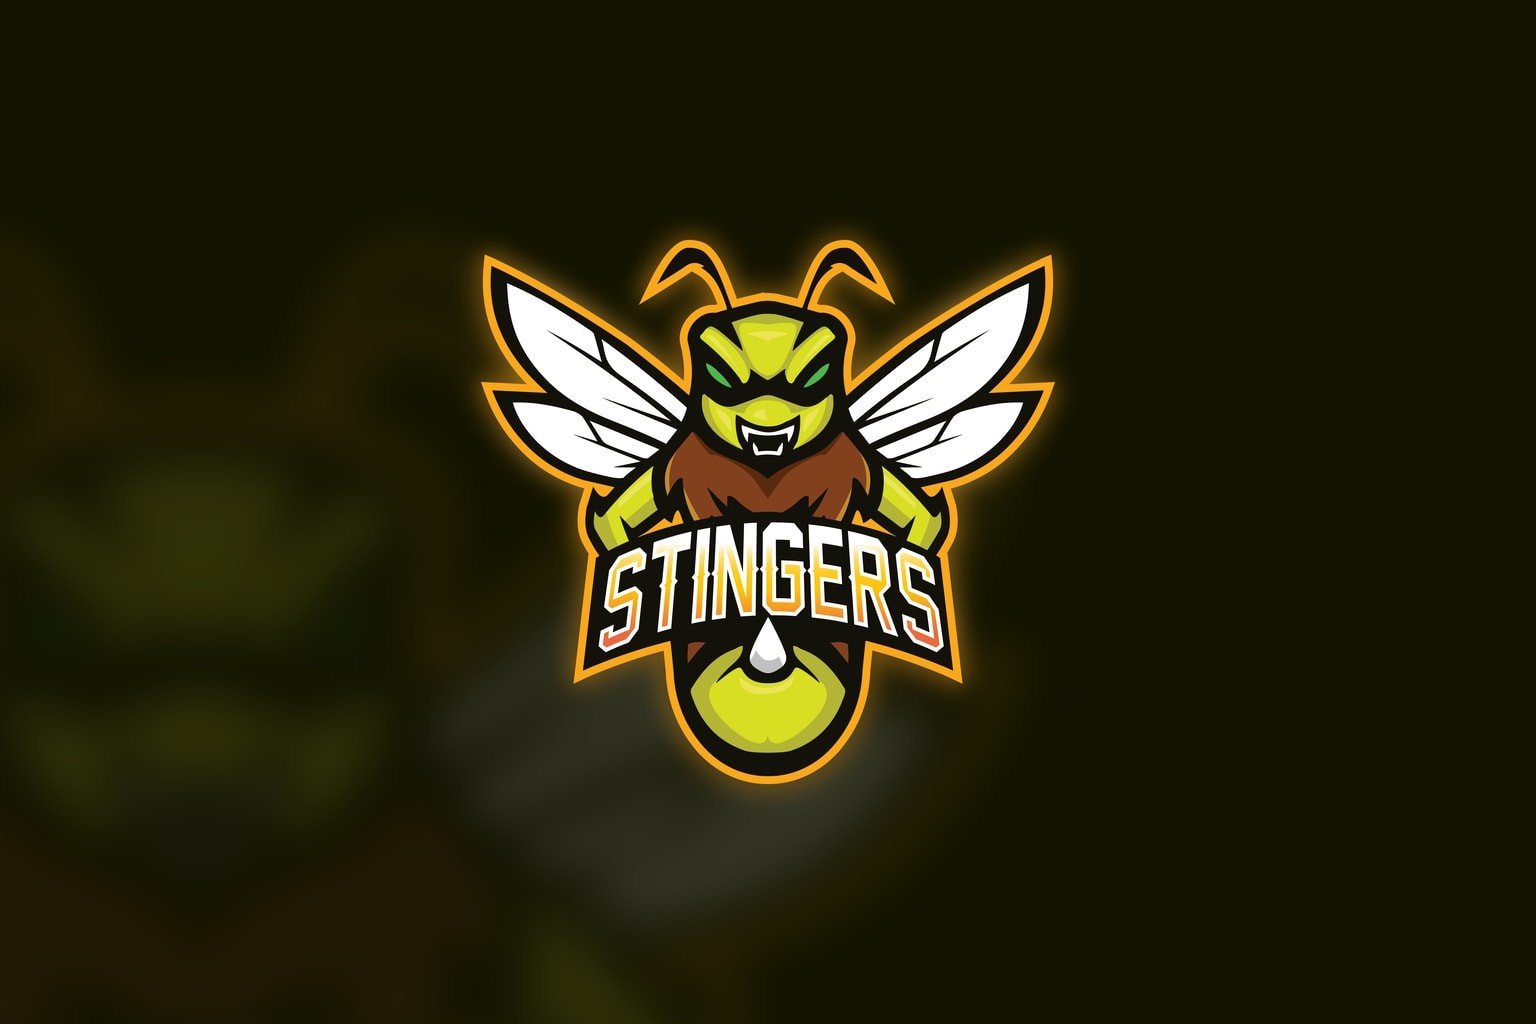 esport logo the stinger